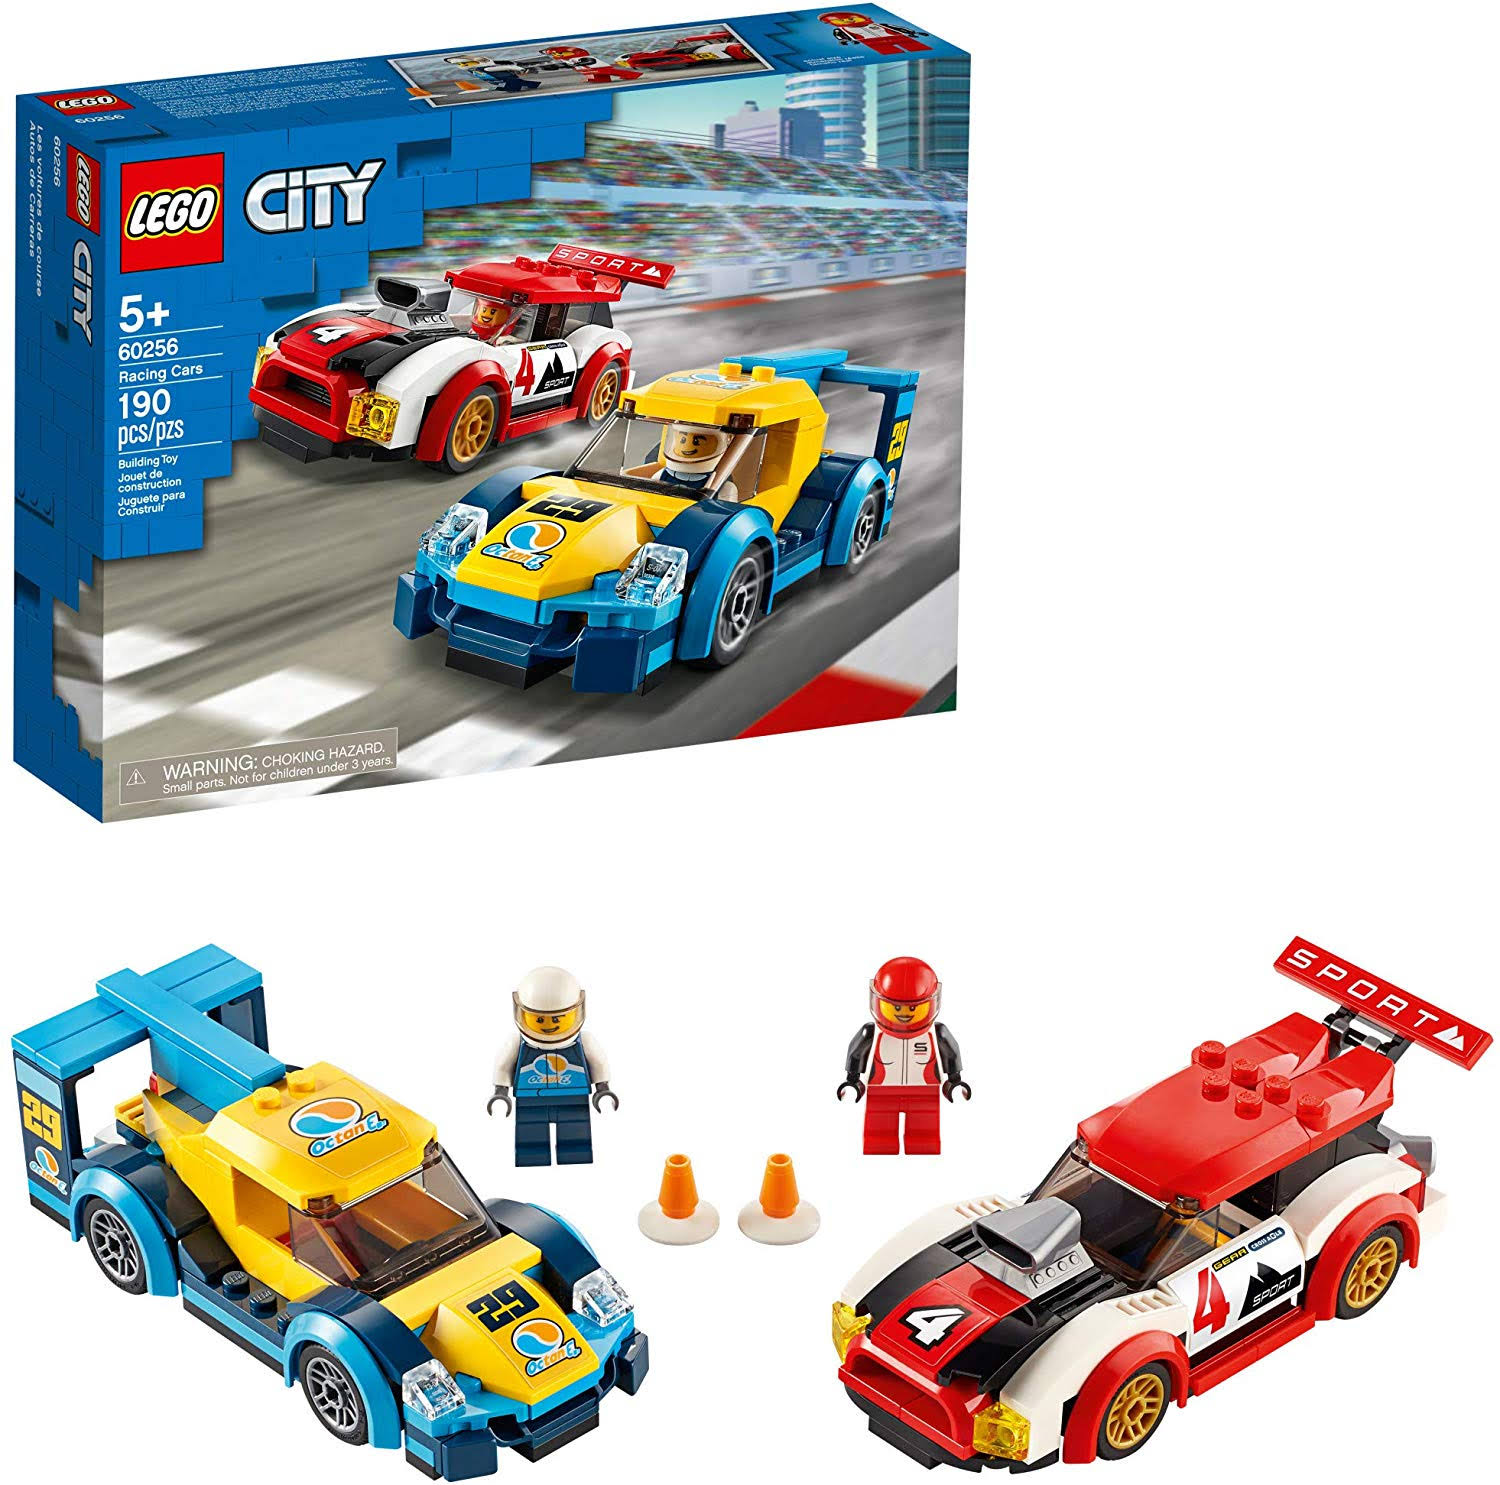 Lego City - Racing Cars 60256